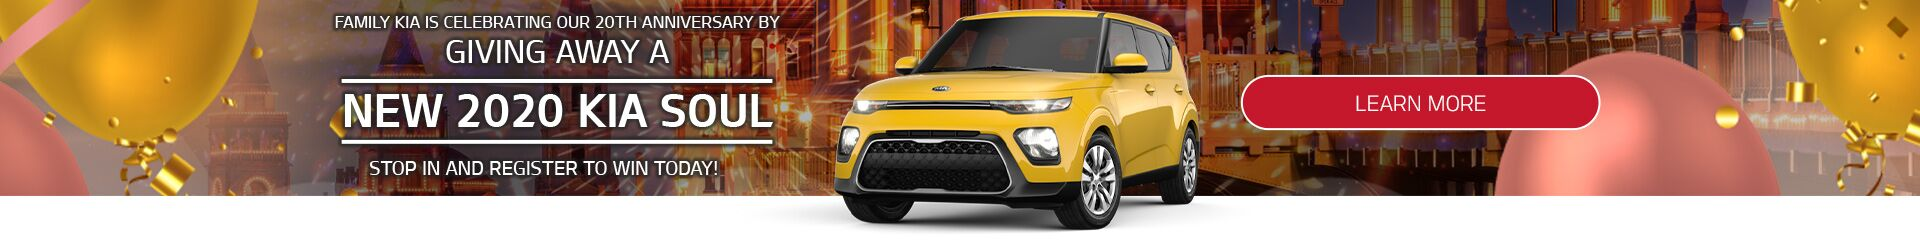 Family Kia 20th Anniversary 2020 Soul Giveaway